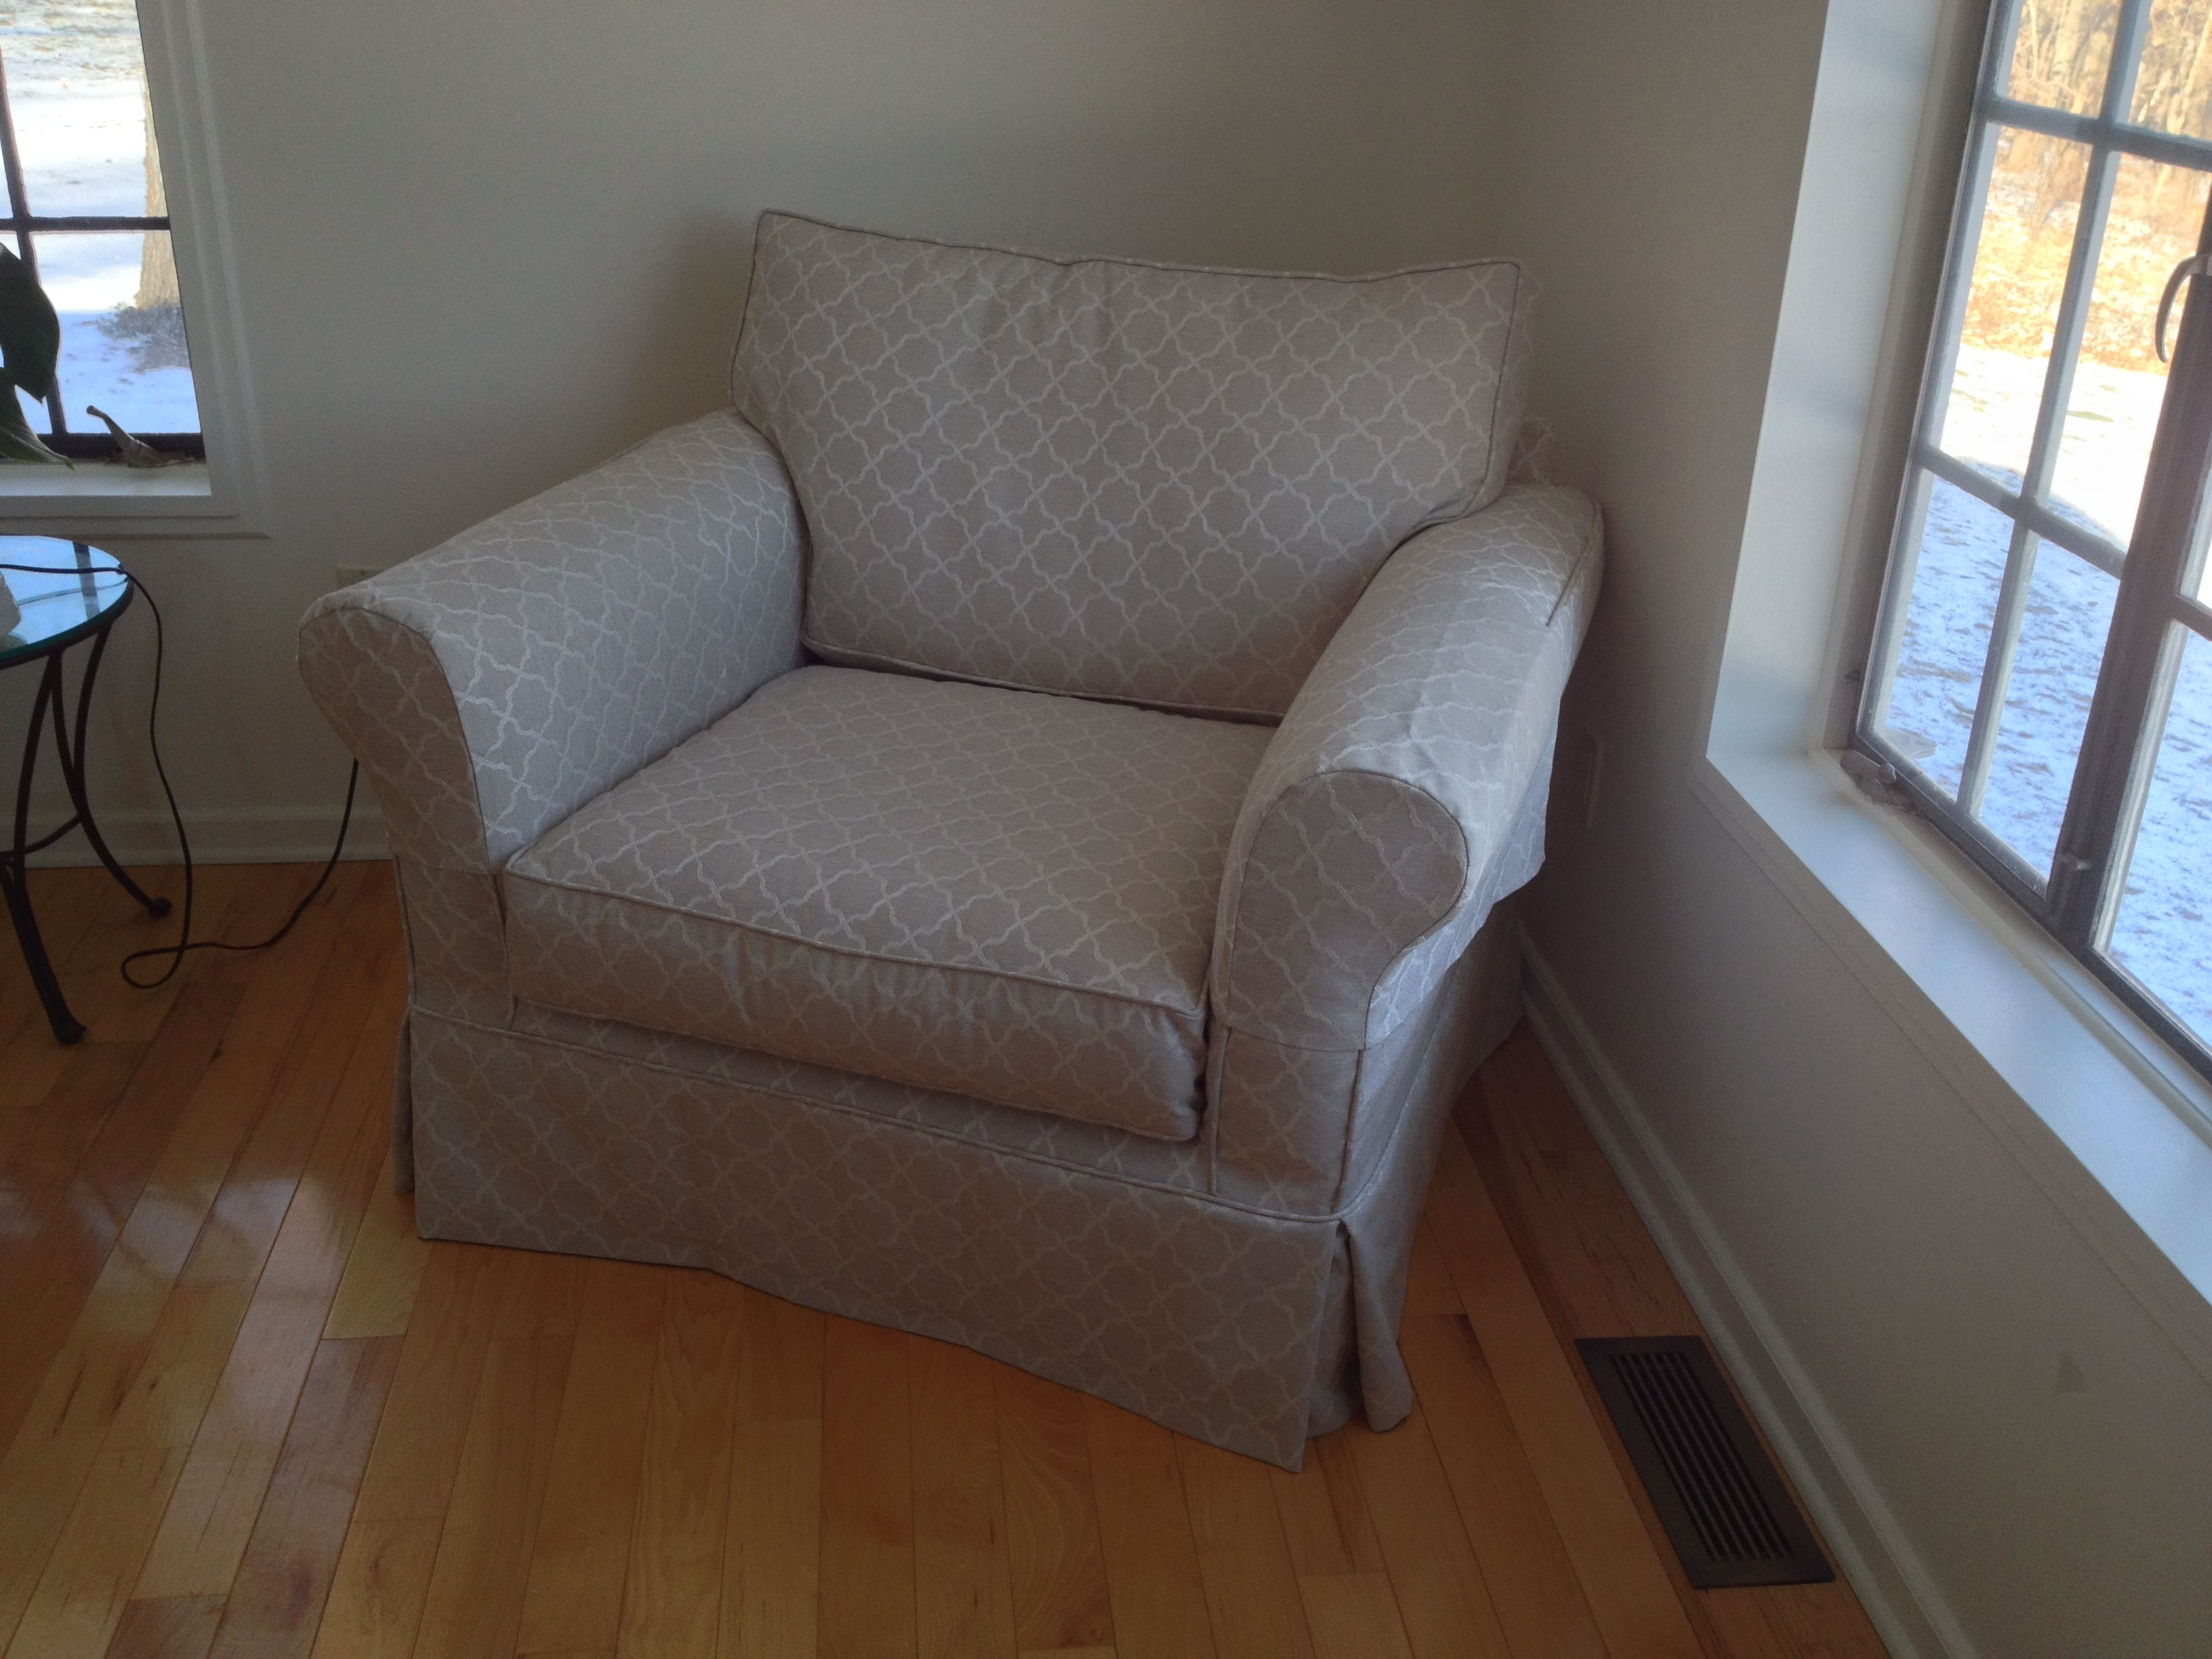 Club chair slipcover with arm covers fabricated from the same